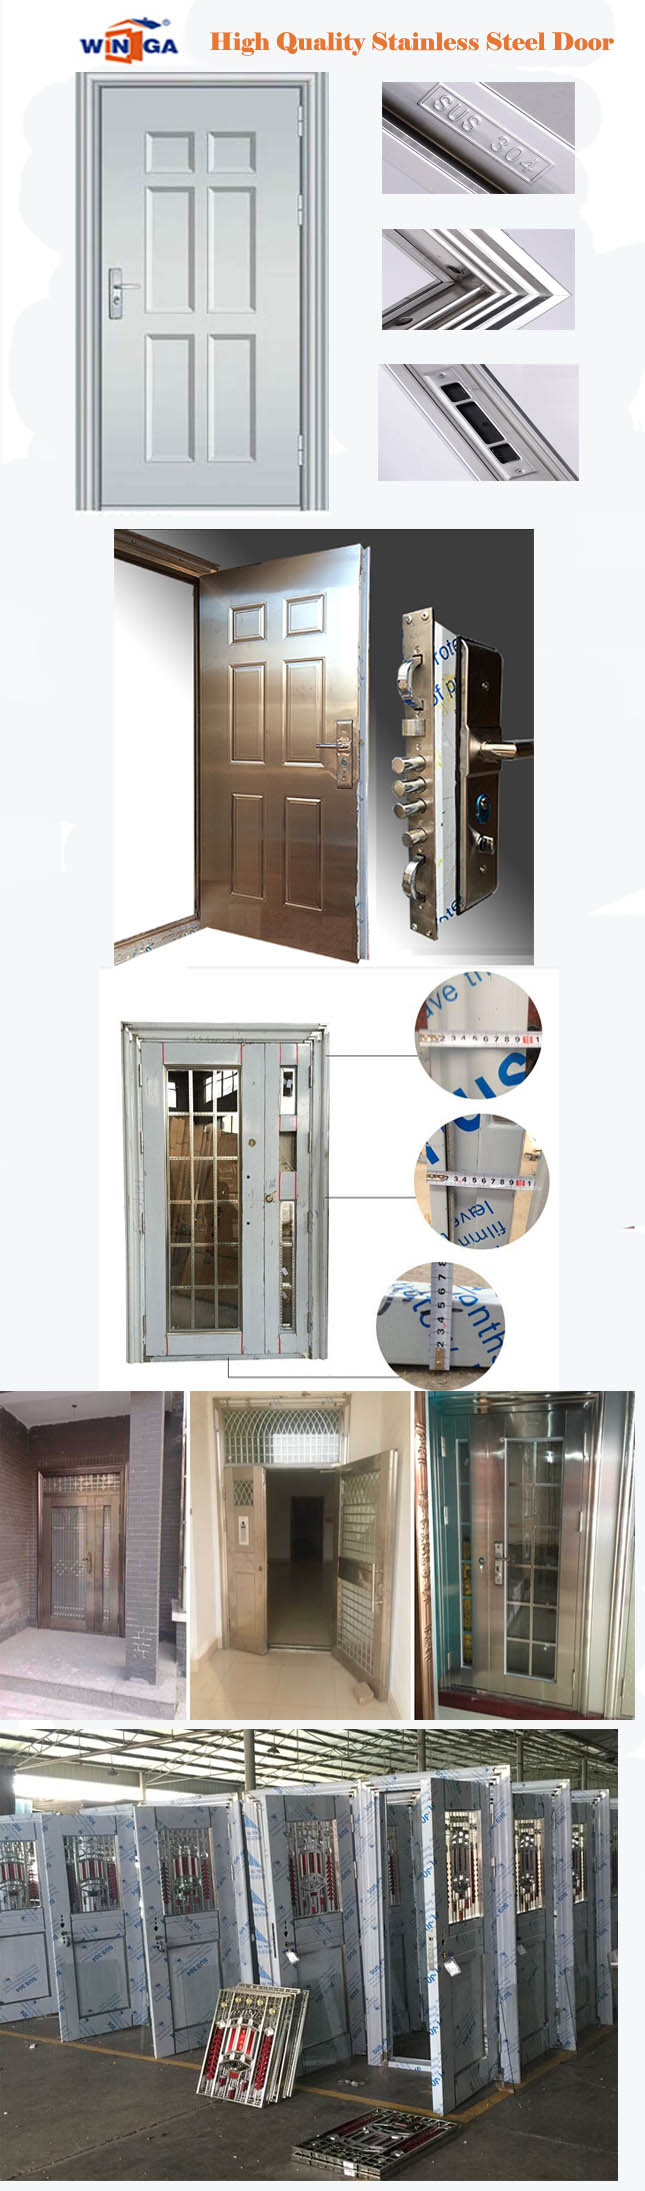 Sunproof Silver Color with Glass Stainless Steel Security Door (W-GH-12)